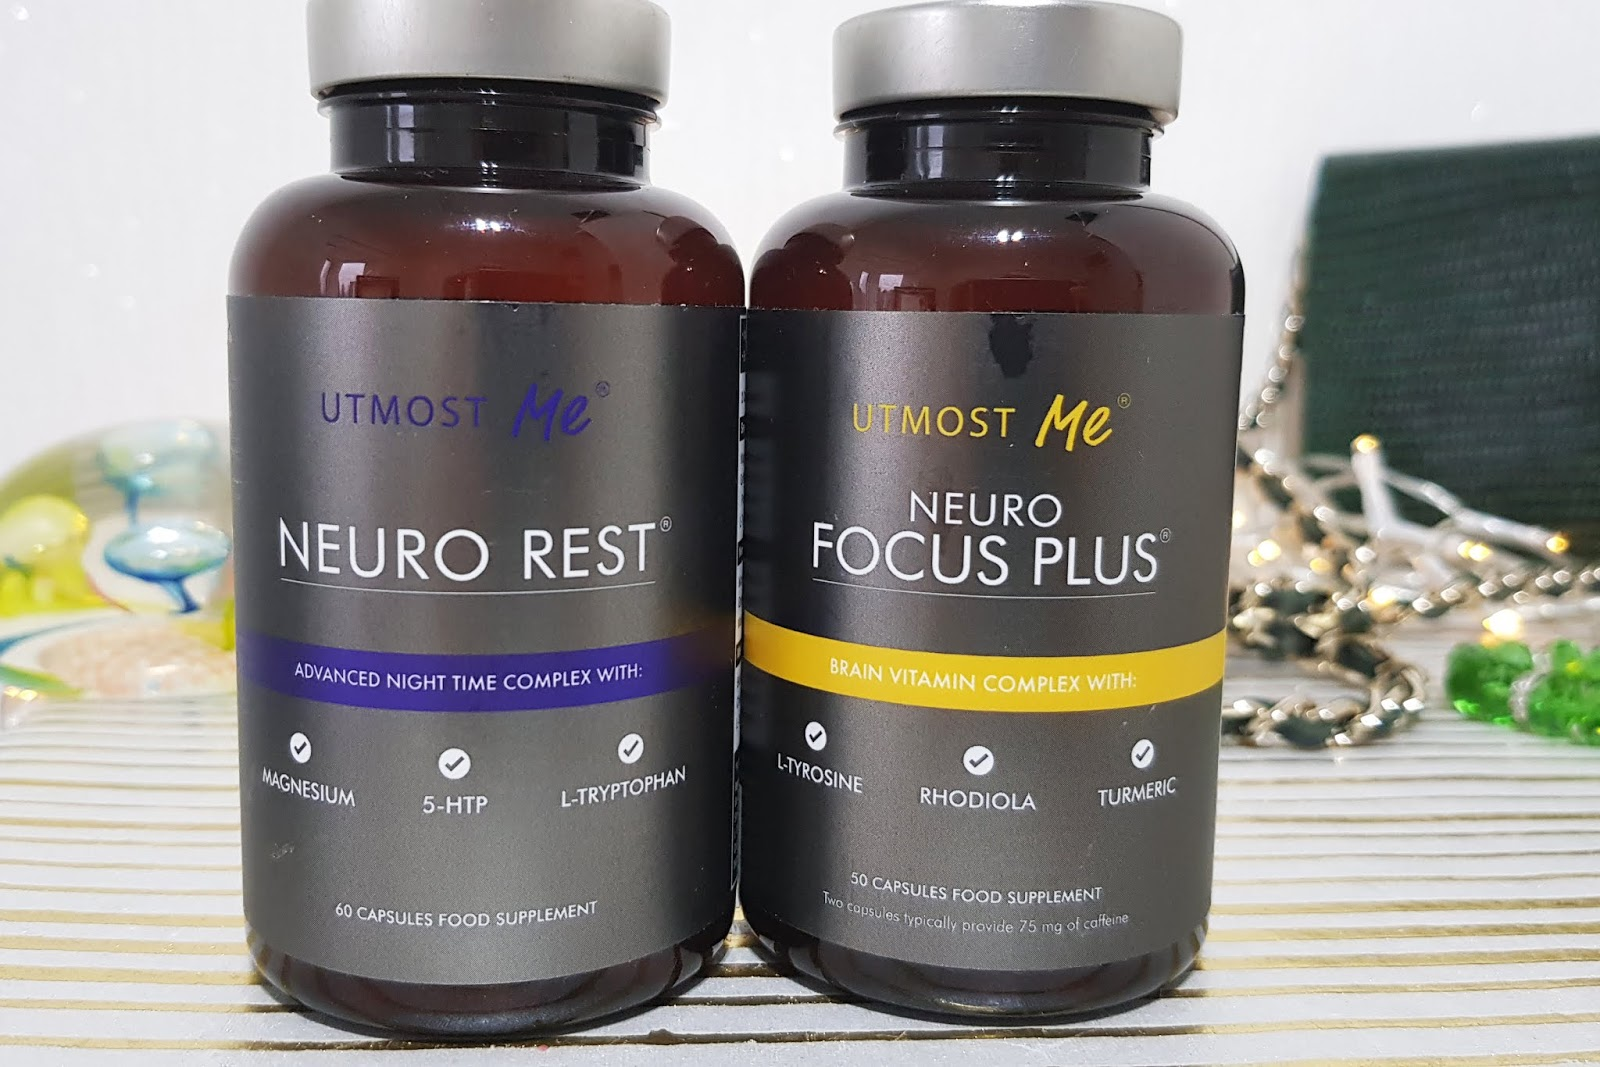 Two bottles of nootropic supplements, Neuro Rest and Neuro Focus Plus, from Is This Mutton's review